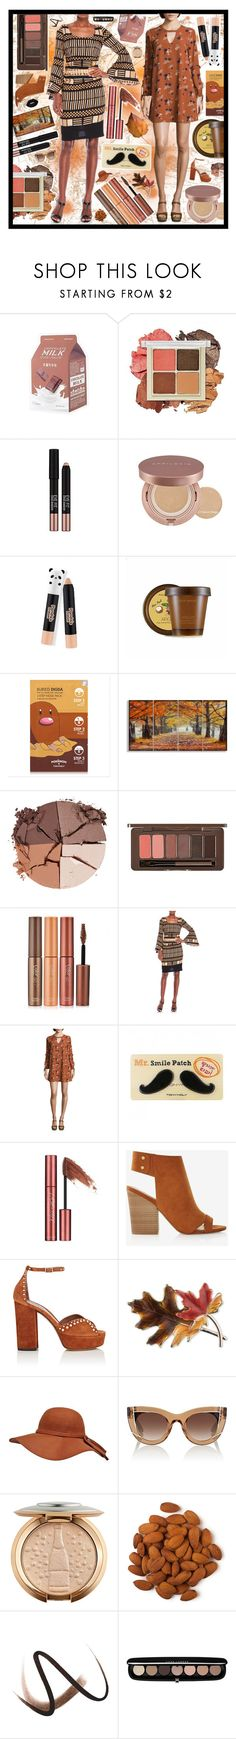 """Fall into Autumn"" by beanpod ❤ liked on Polyvore featuring Etude House, Missha, TONYMOLY, nature republic, Stupell, lilah b., Skinfood, Tracy Reese, City Triangles and Express"